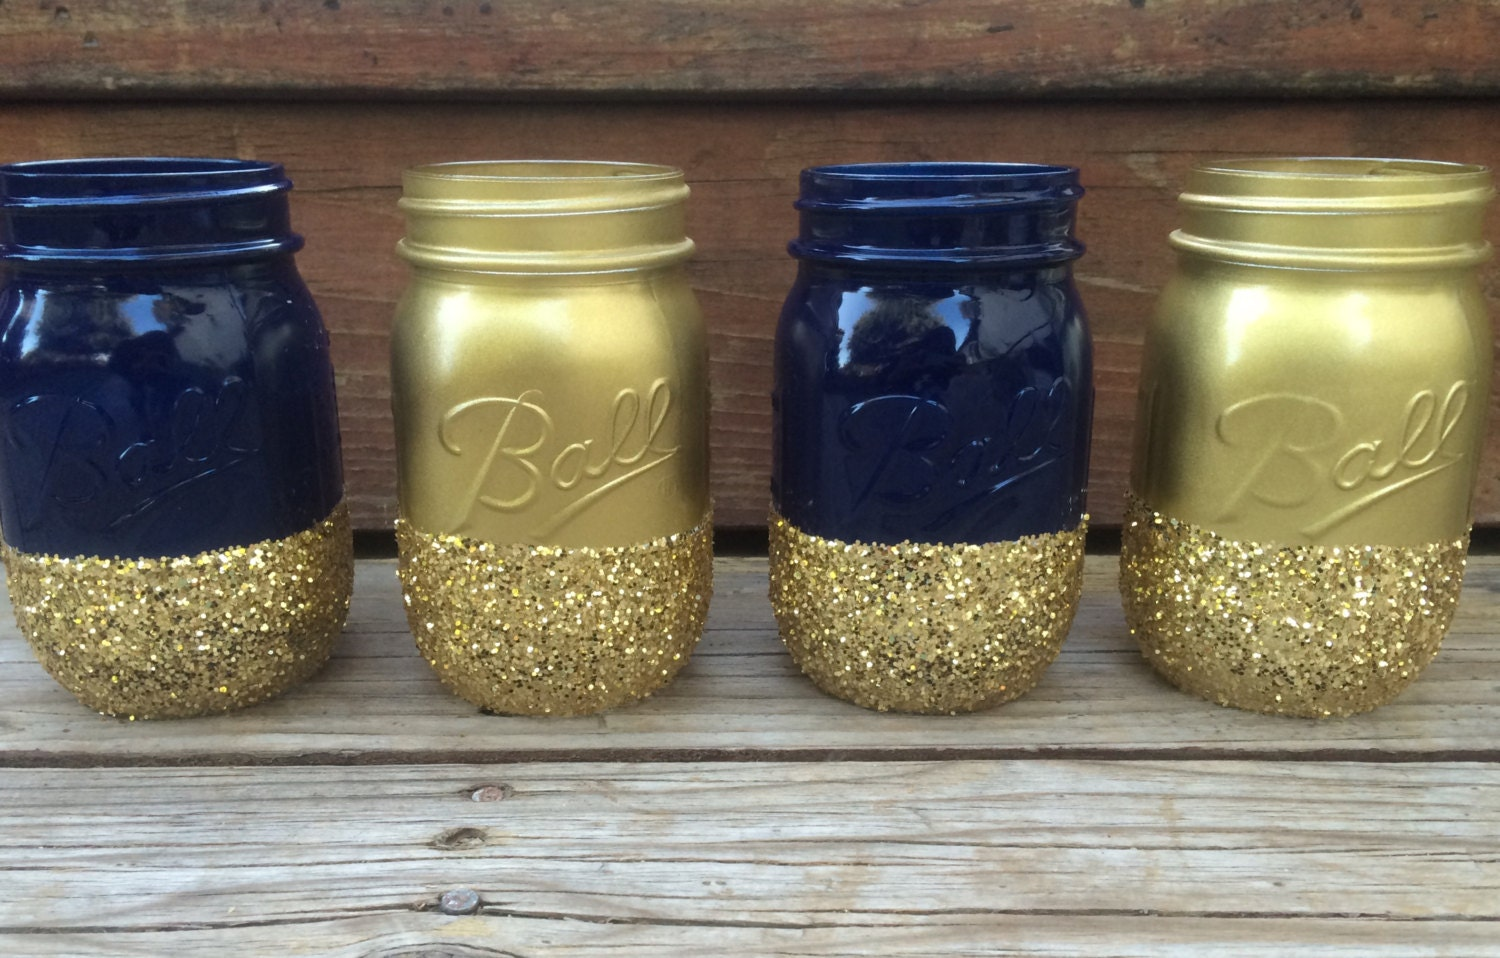 Blue And Gold Baby Shower Decorations Set Of 4 Glitter Mason Jars Use For Makeup Brushes Pens